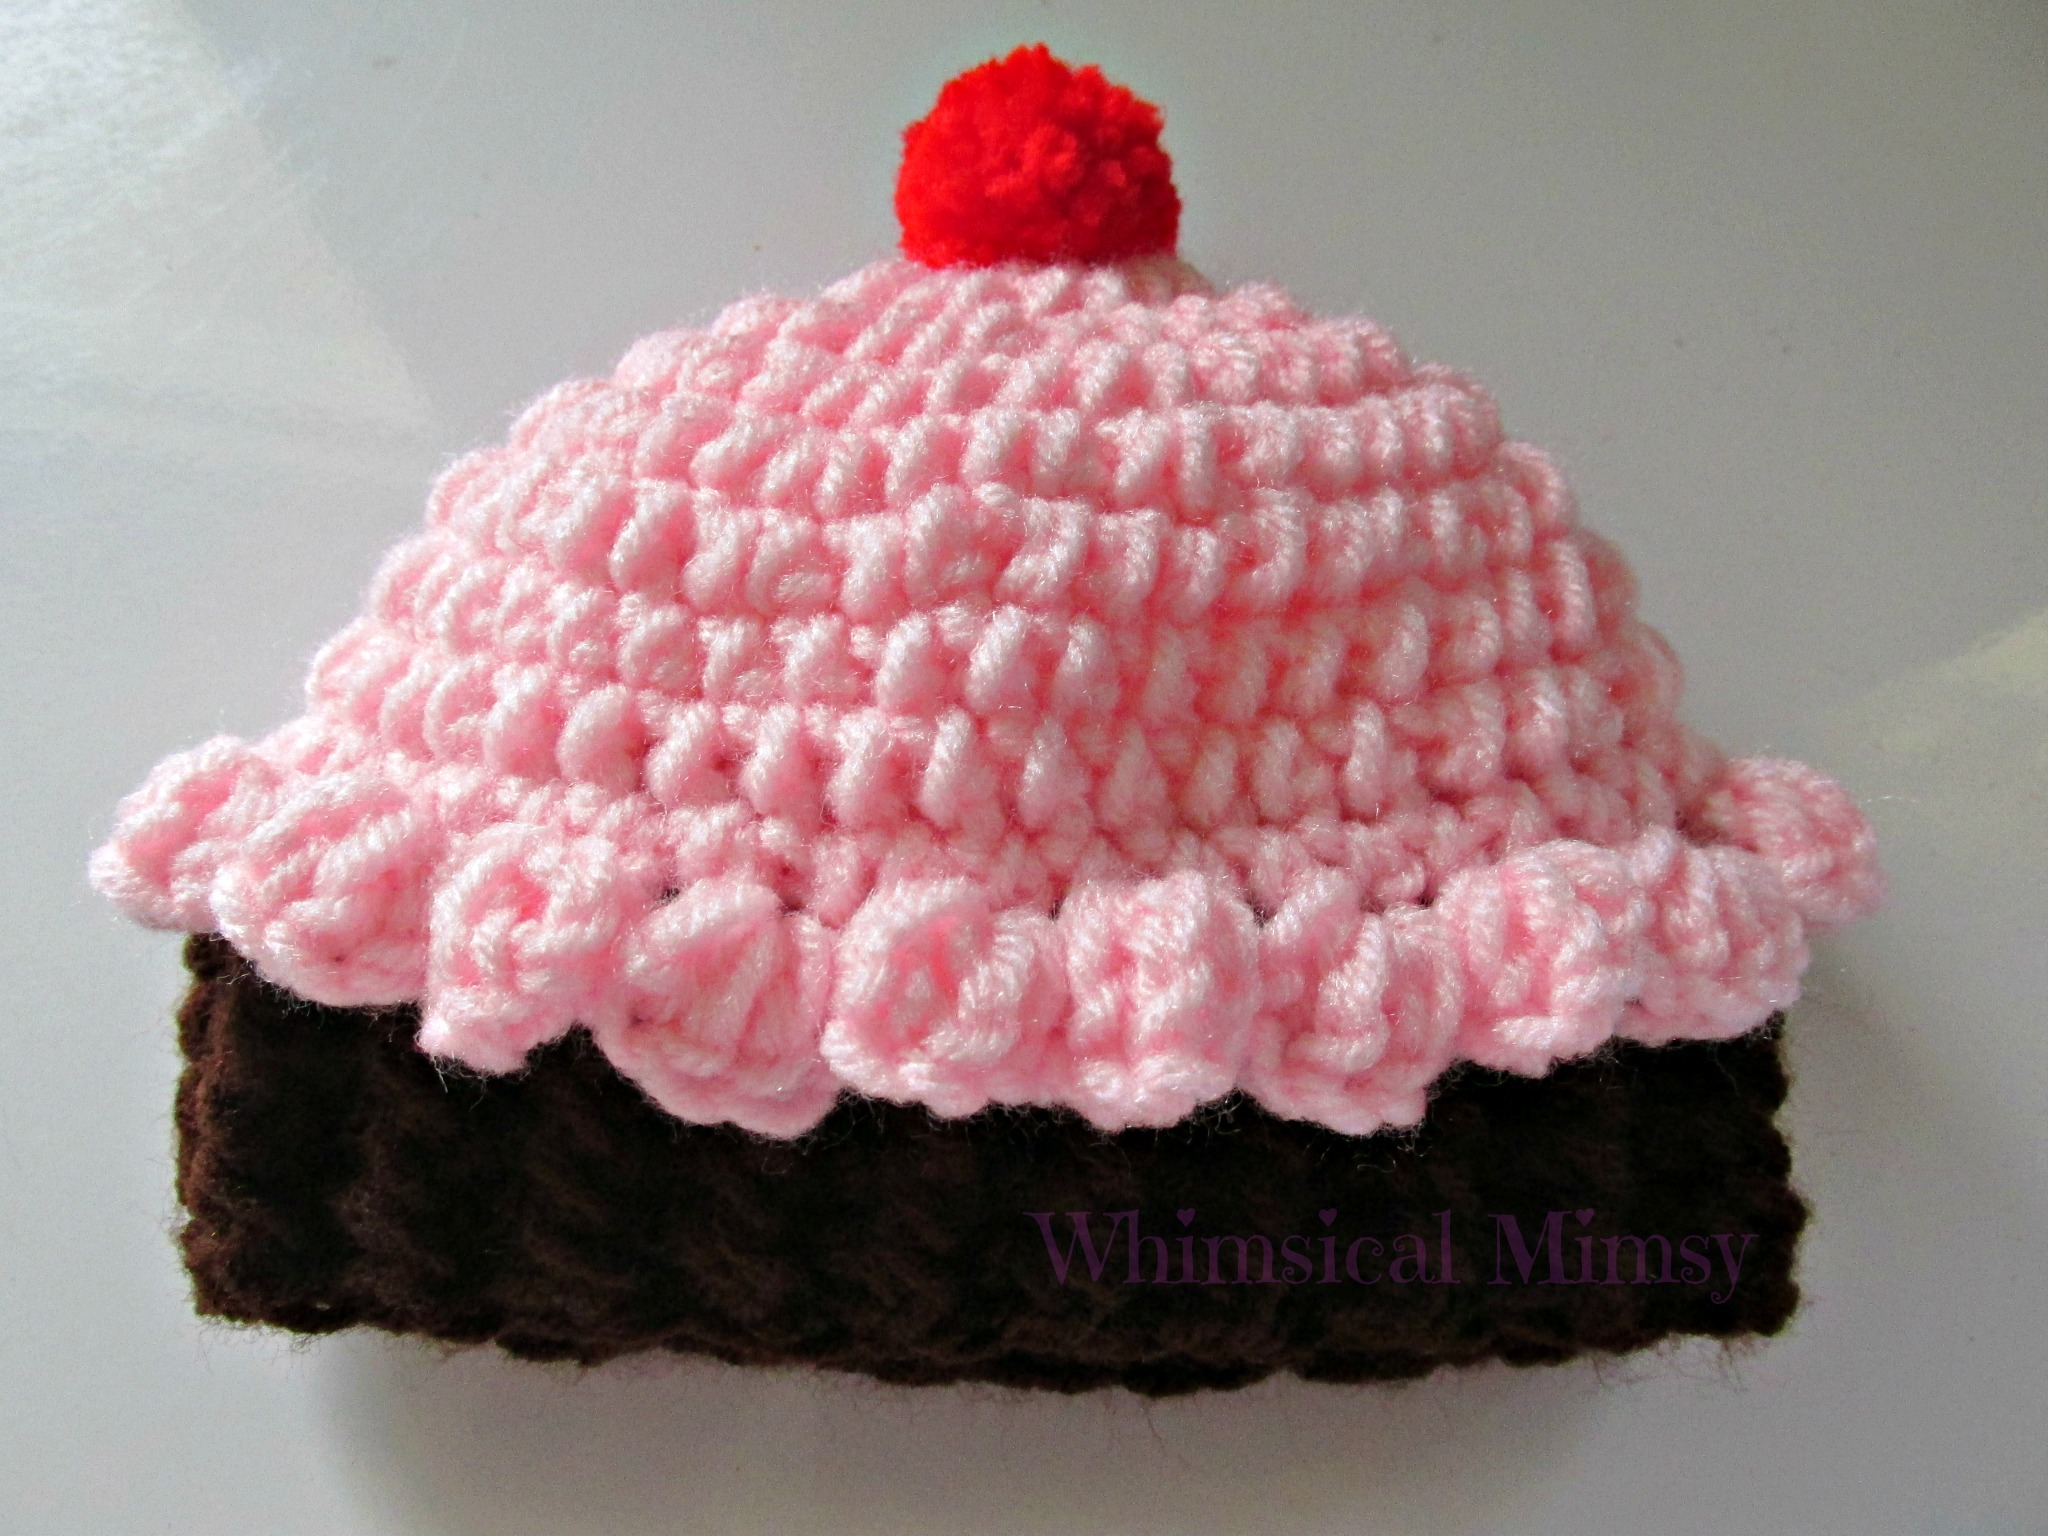 61c6647ae1a Crochet Baby Pink Cupcake Hat · Whimsical Mimsy · Online Store ...